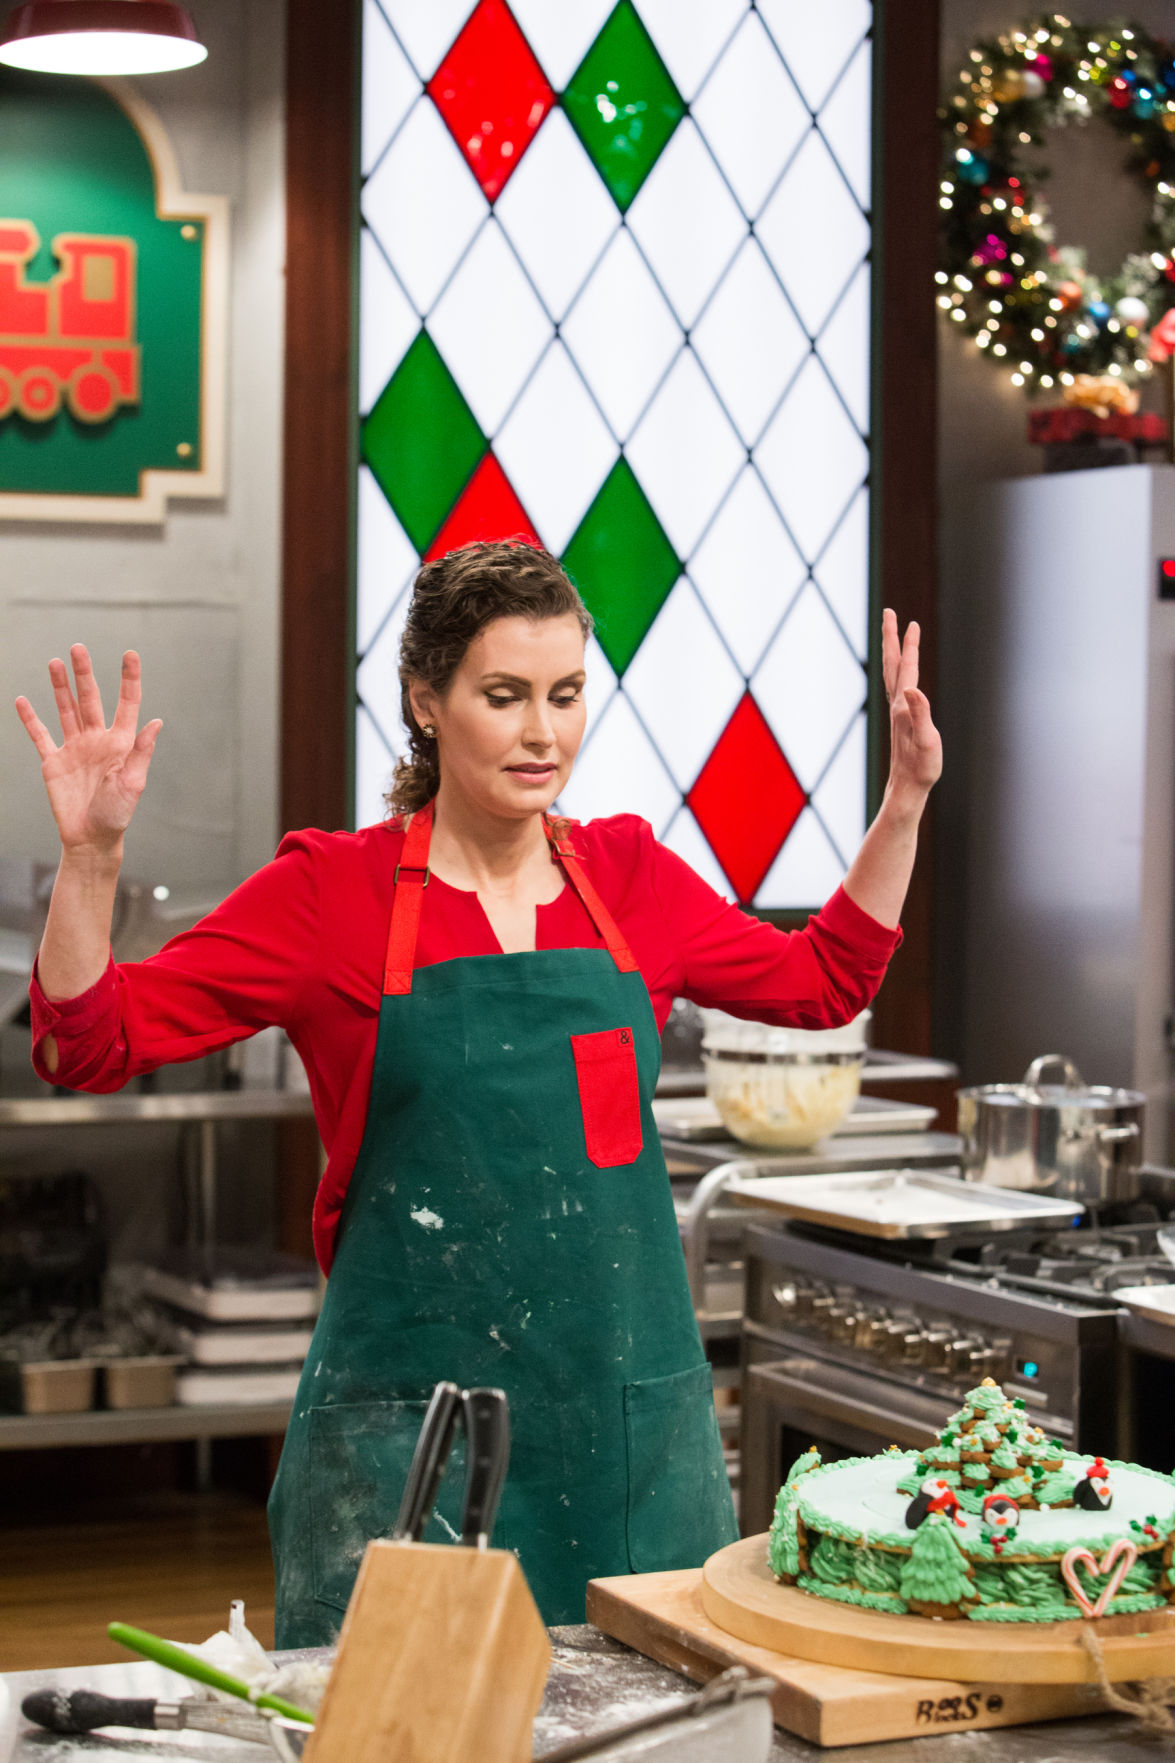 Local Baker Makes Top 3 On Food Network S Christmas Cookie Challenge Community Nbcrightnow Com